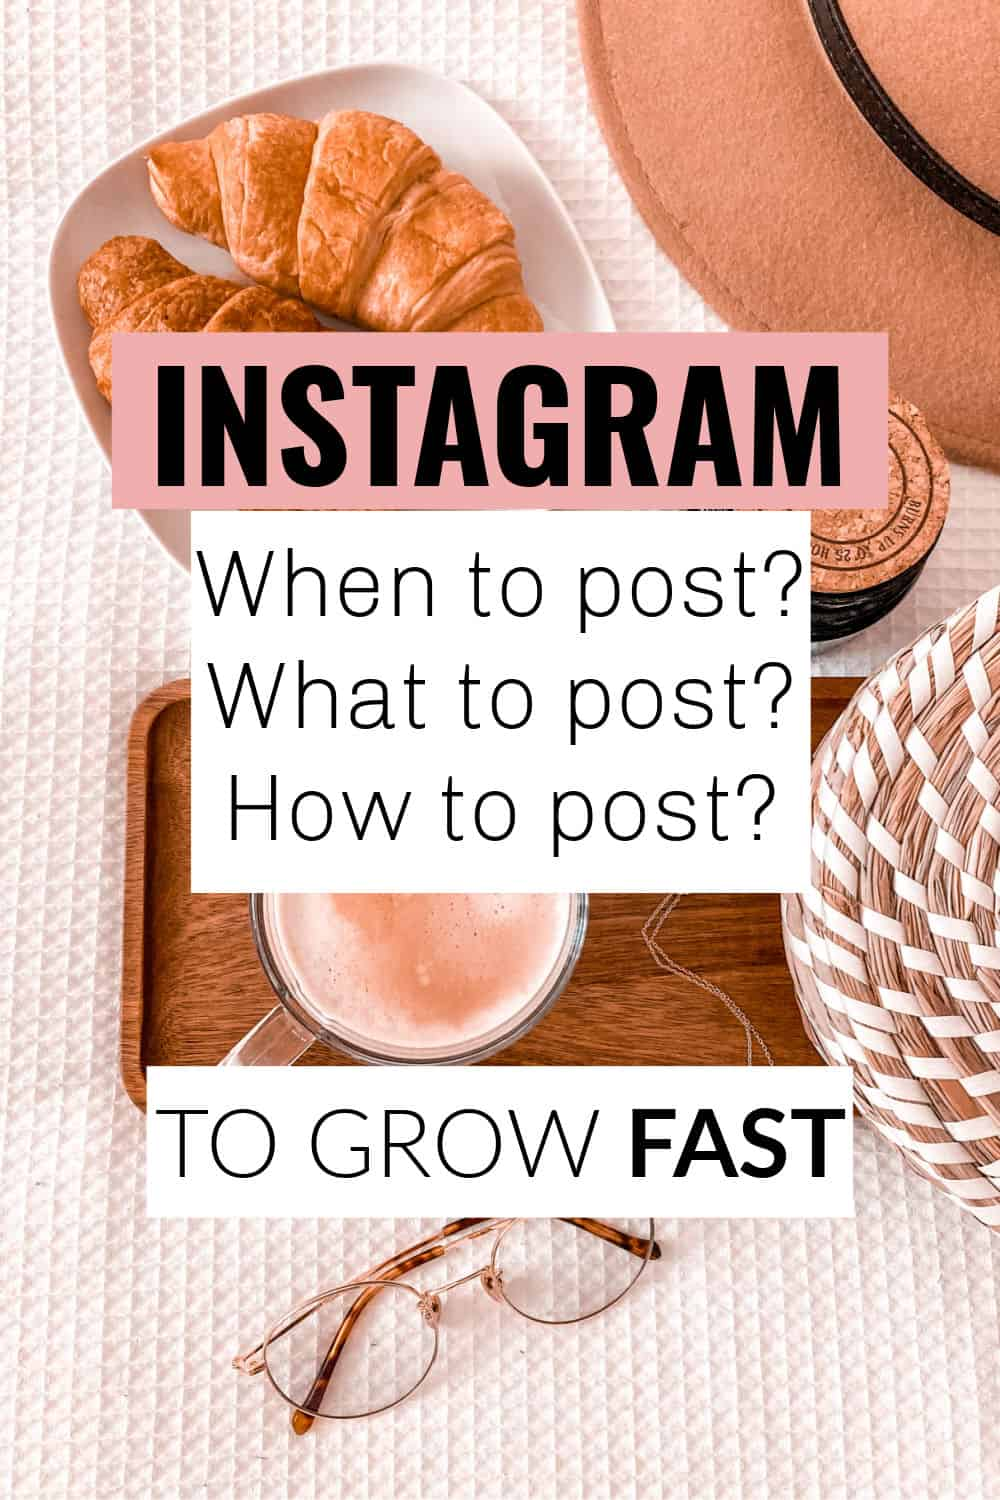 What when and how to post on Instagram to grow fast